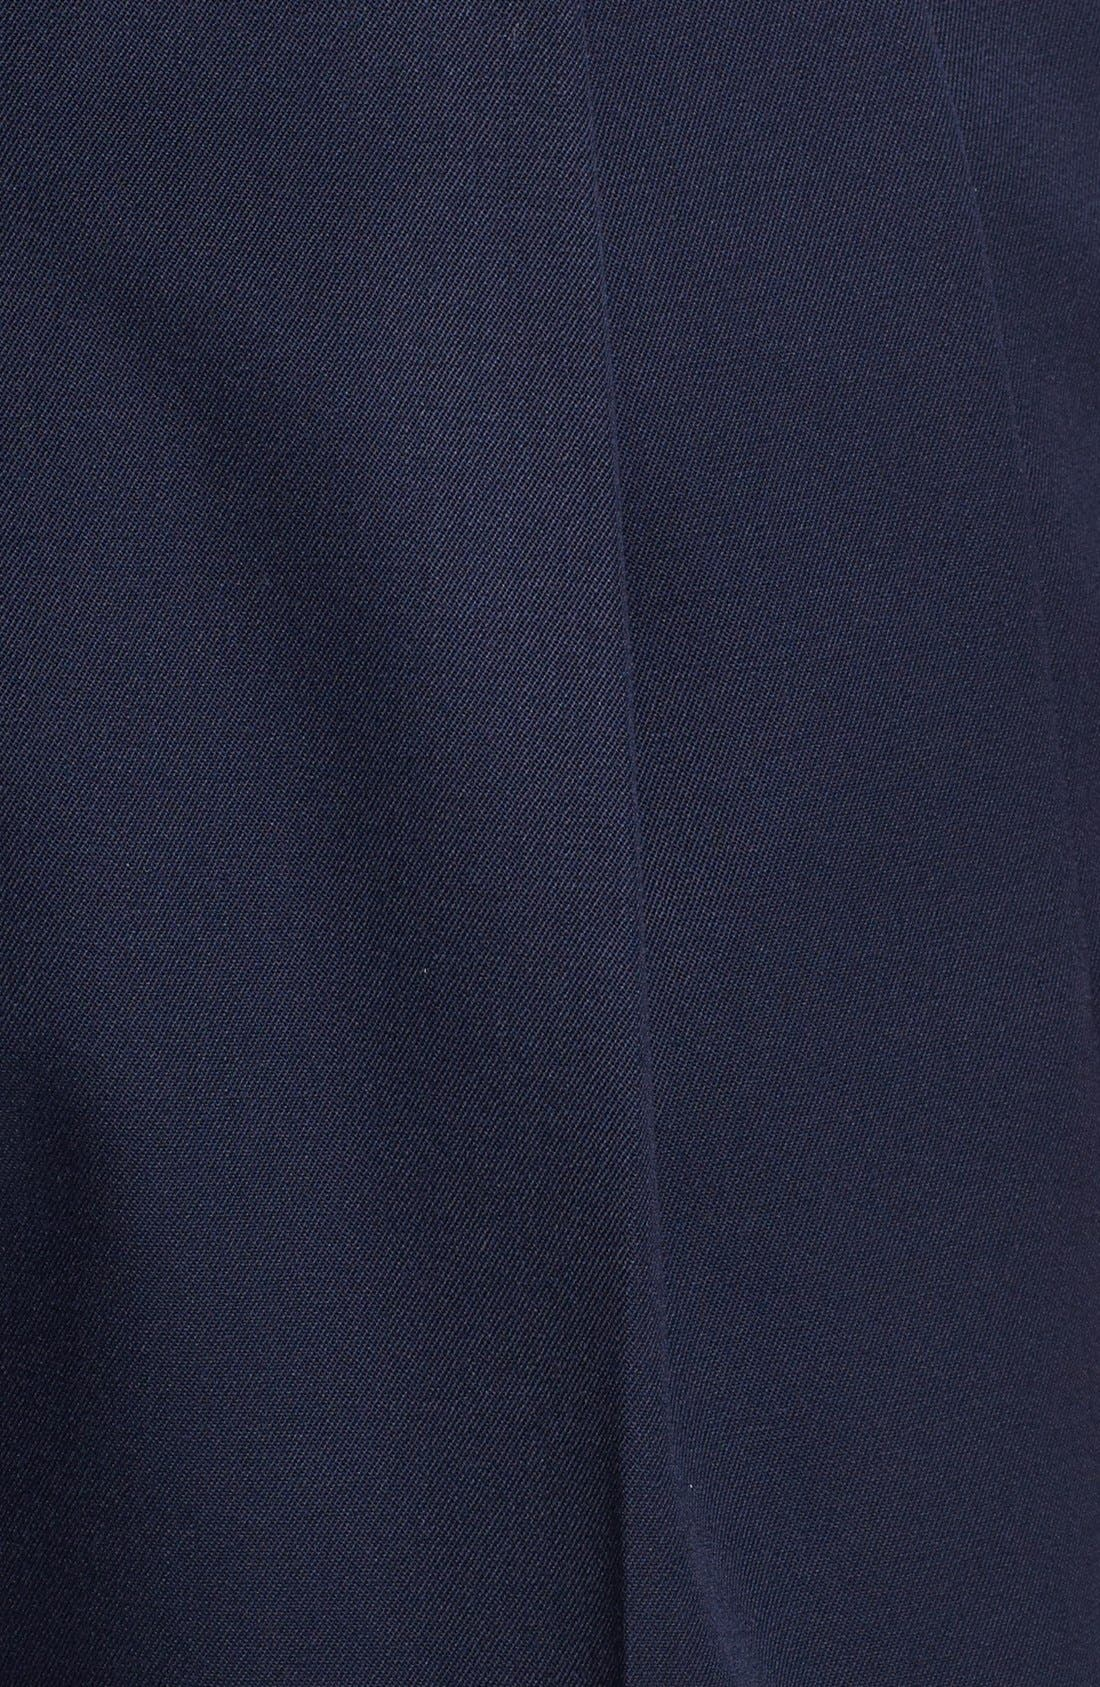 Pleated Super 100s Worsted Wool Trousers,                             Alternate thumbnail 3, color,                             Navy